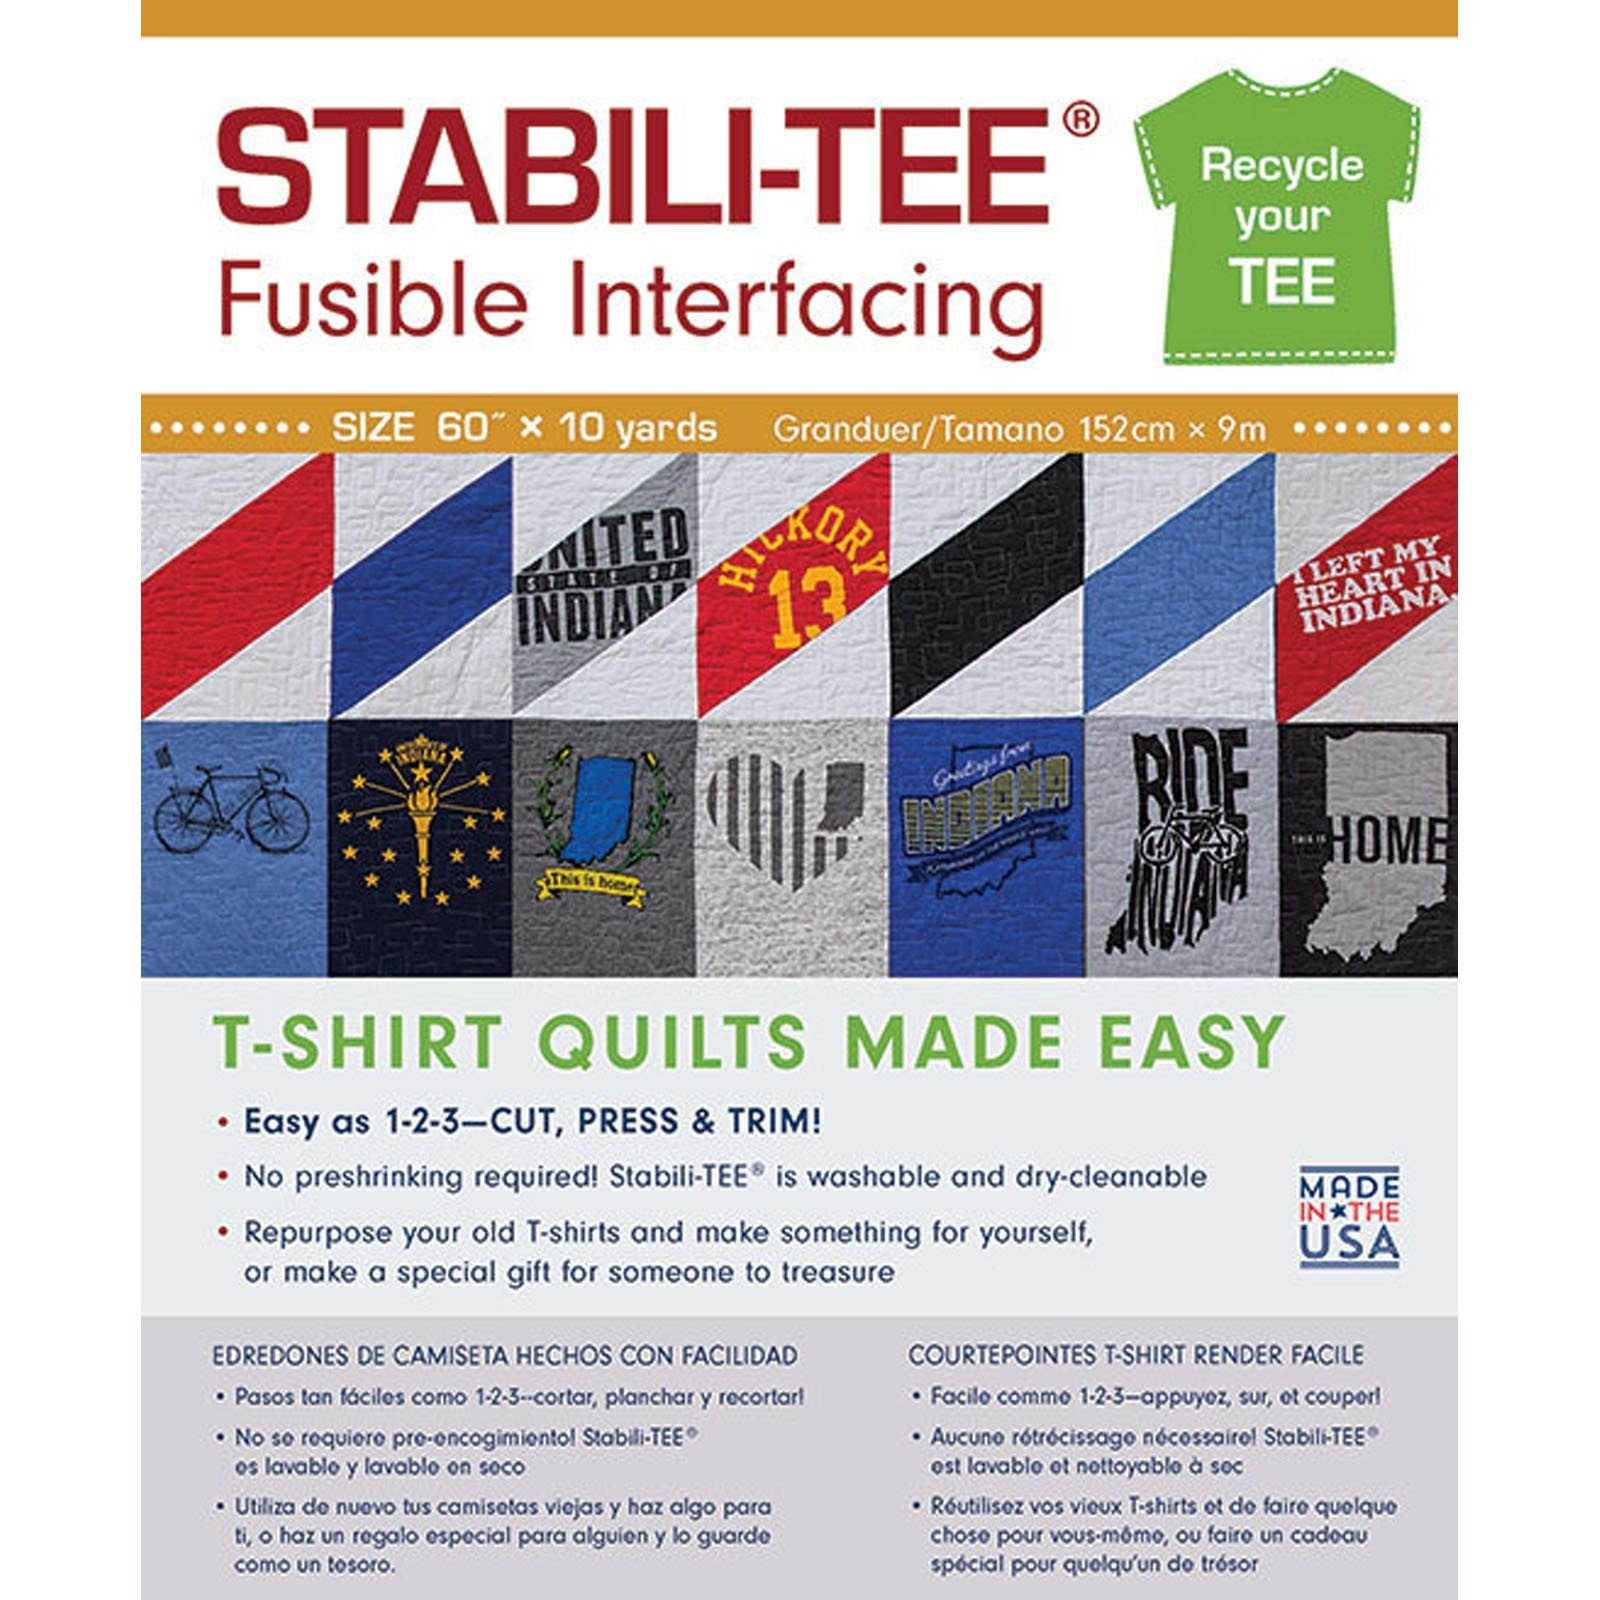 Stabili-Tee Fusible Interfacing<br/>C&T Publishing